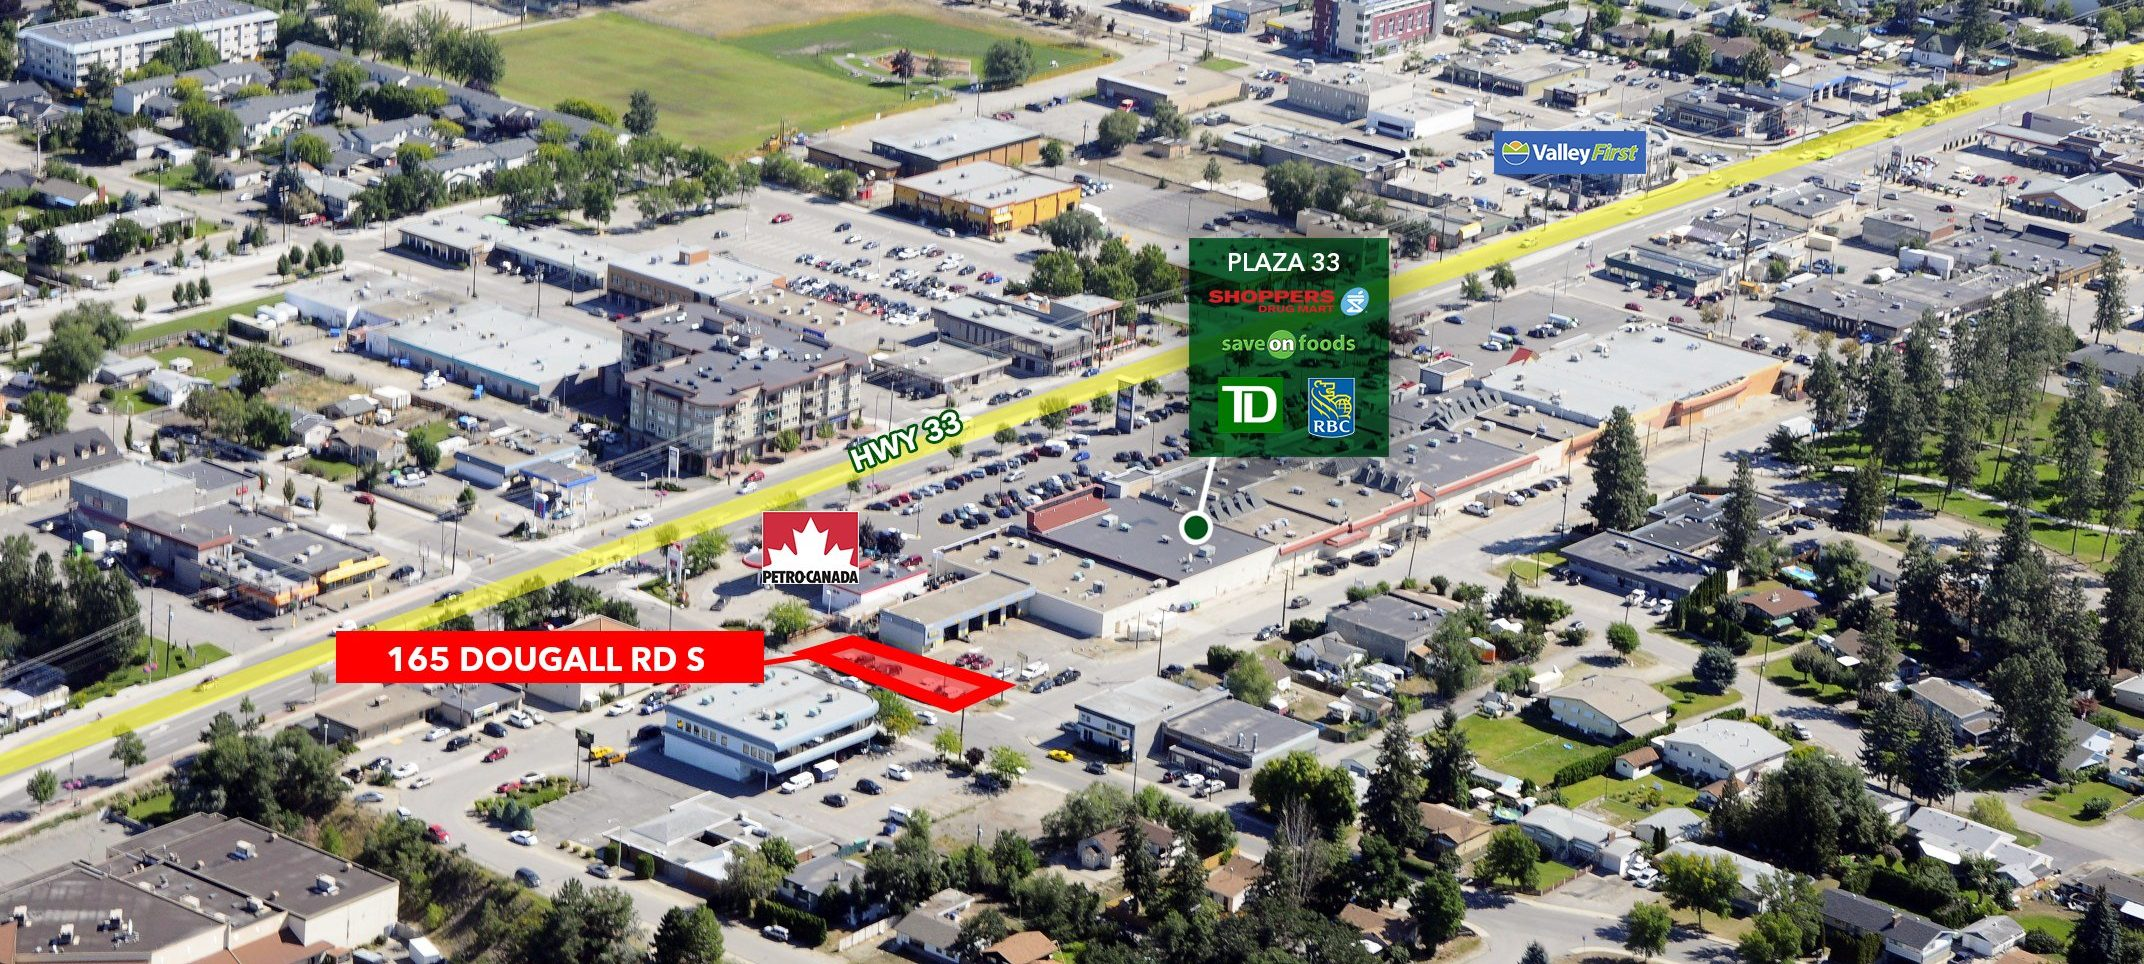 165 Dougall Road S, Kelowna, BC - Commercial Land in Rutland